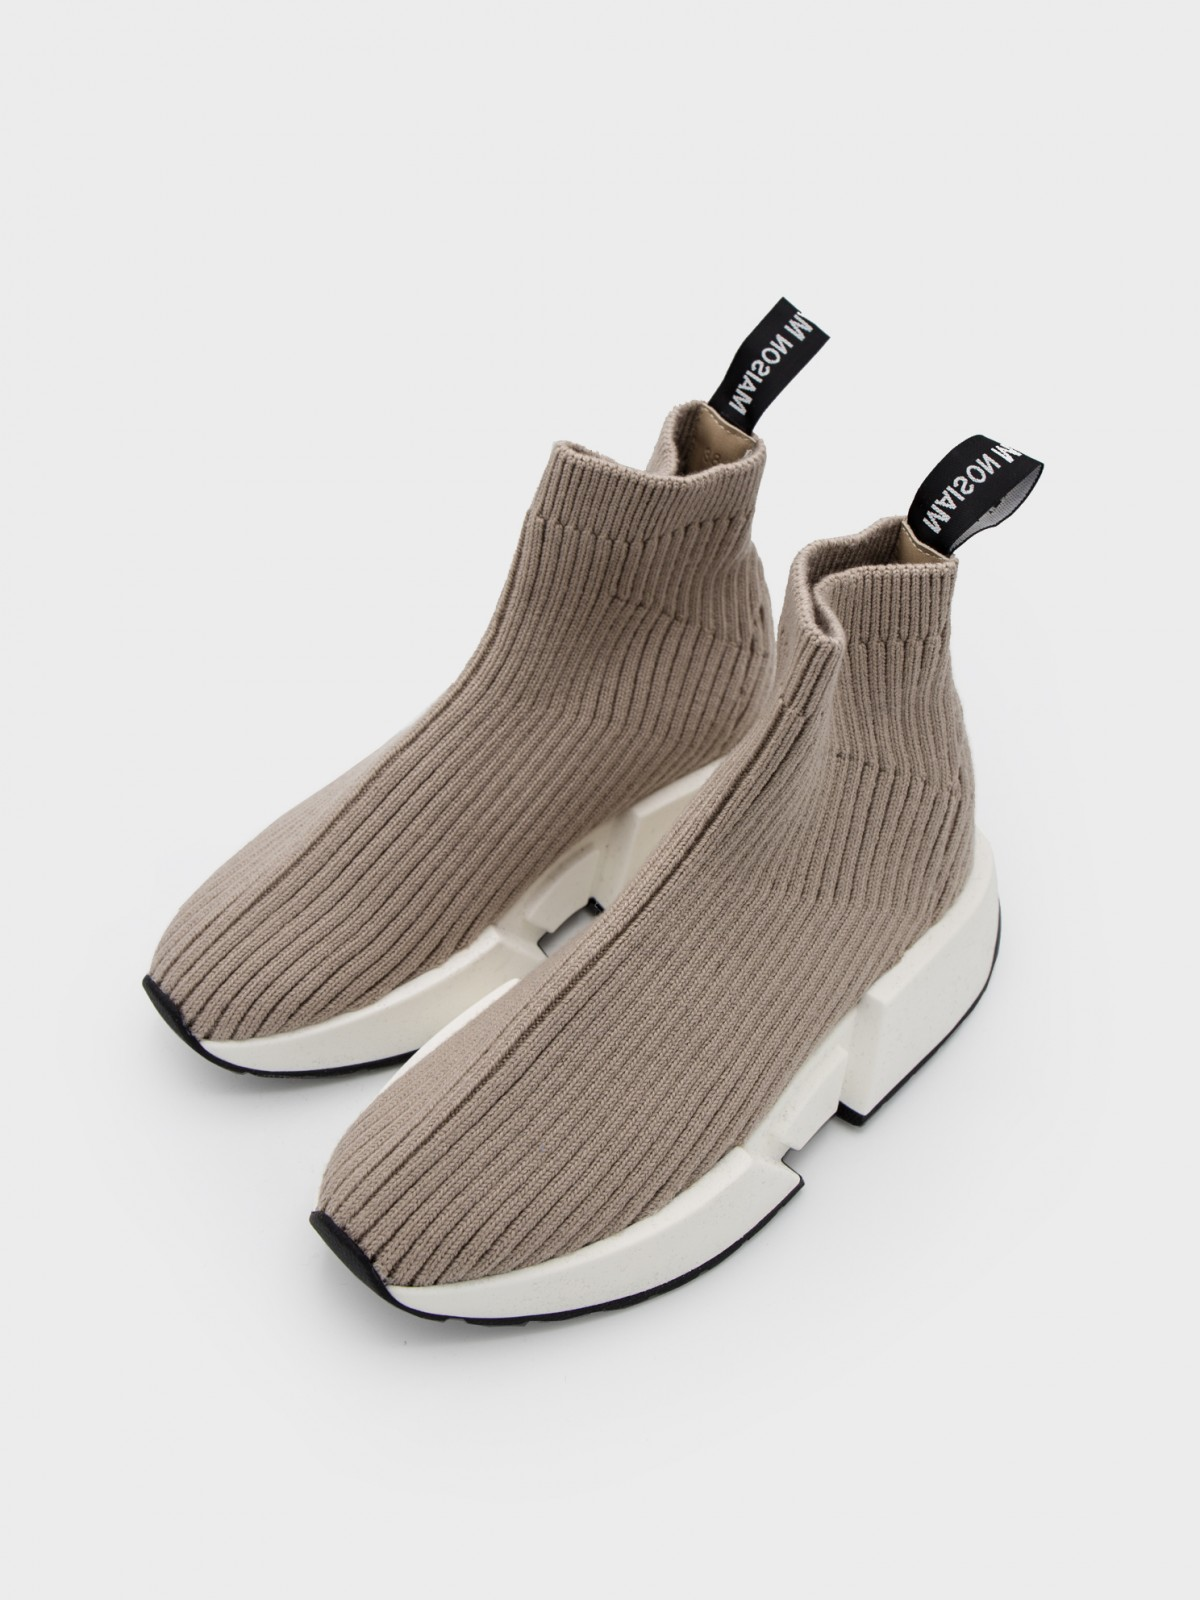 MM6 Maison Margiela Sock Runner Sneakers in Simply Taupe